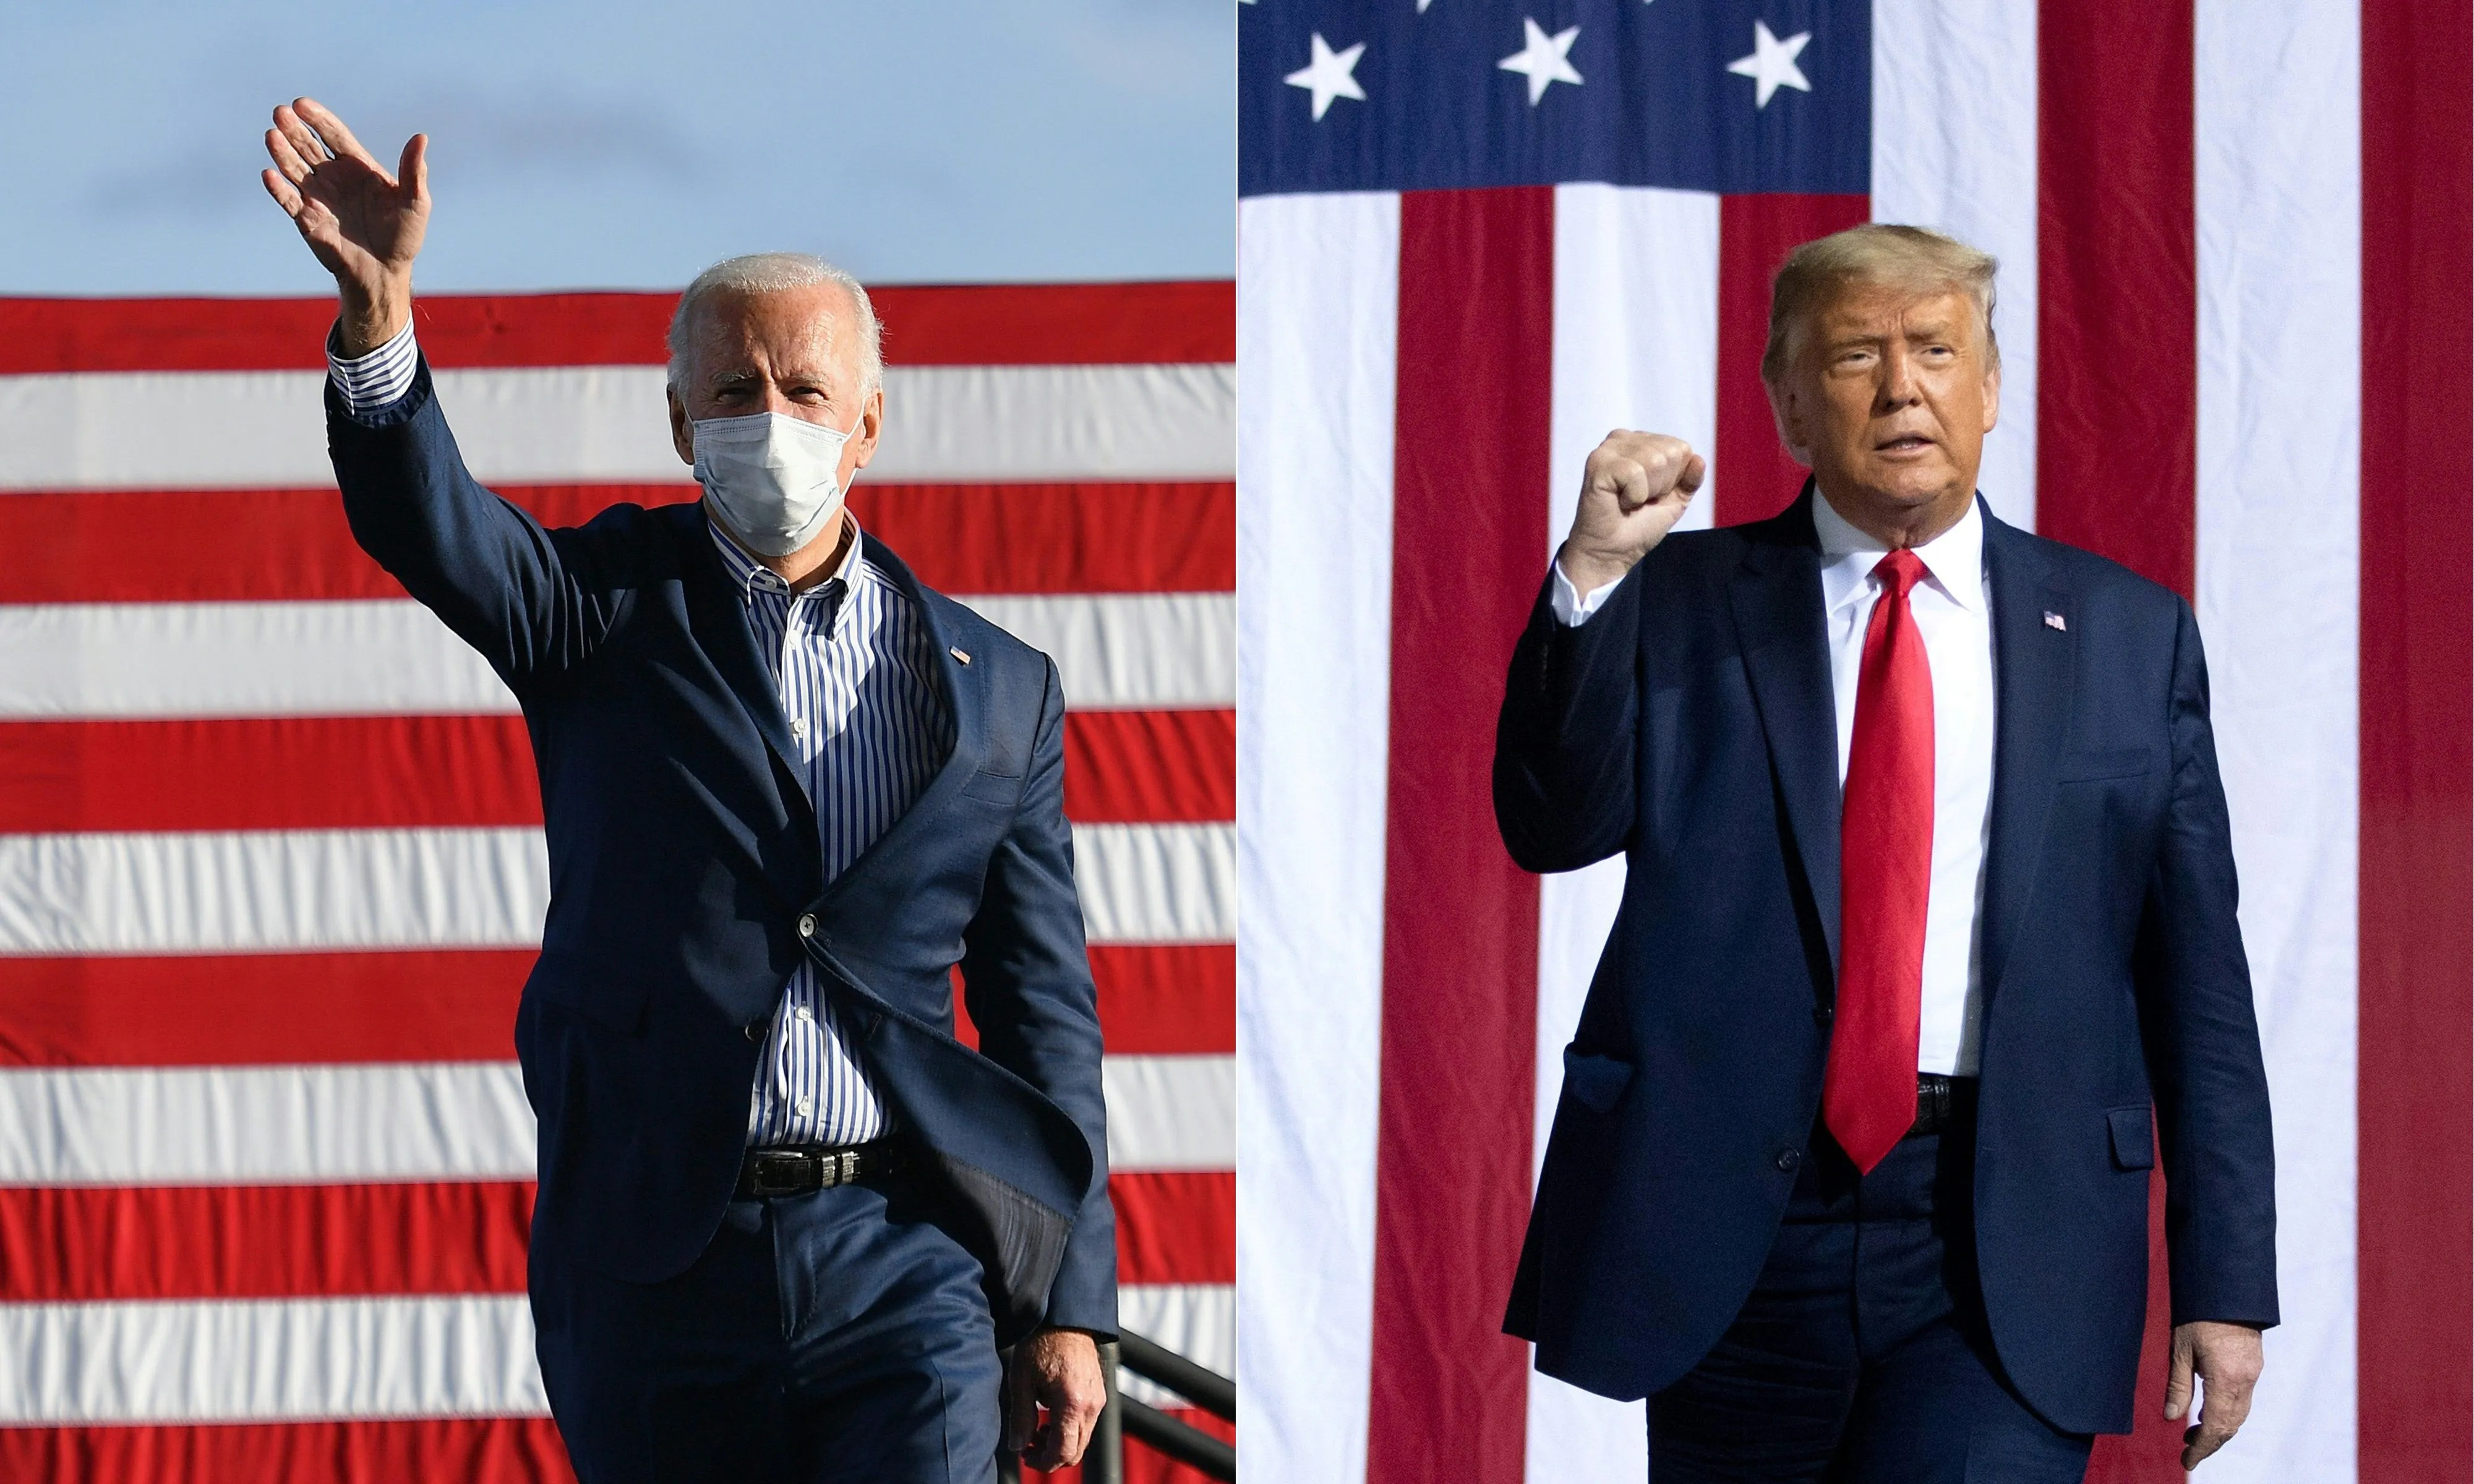 Democratic presidential nominee Joe Biden (left) and President Donald Trump (right) are pictured during their respective campaigns.